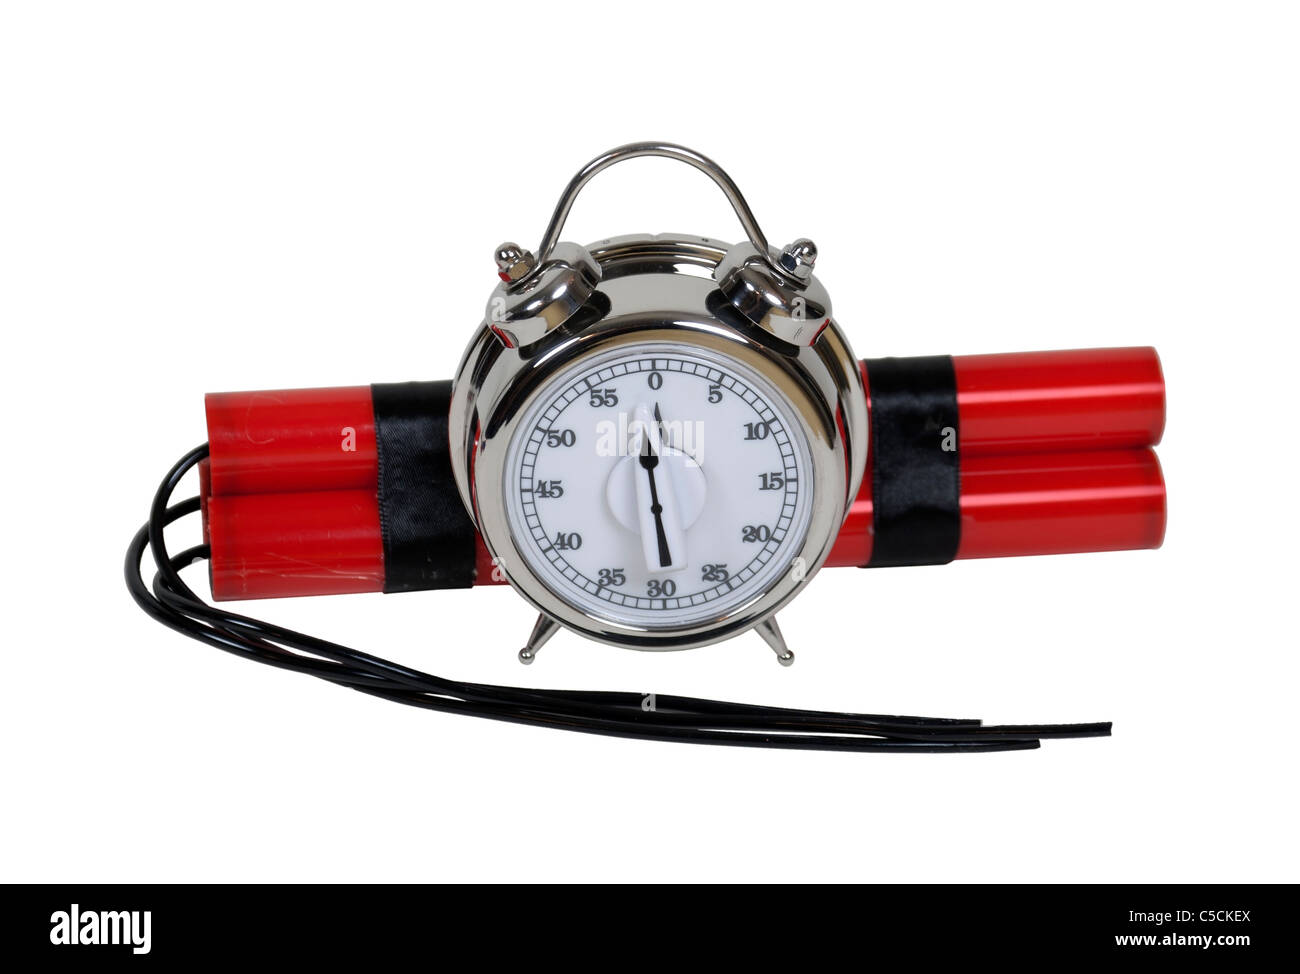 Bundle of red sticks of dynamite with long fuses with a timer alarm clock bomb that is only moments before zero - Stock Image